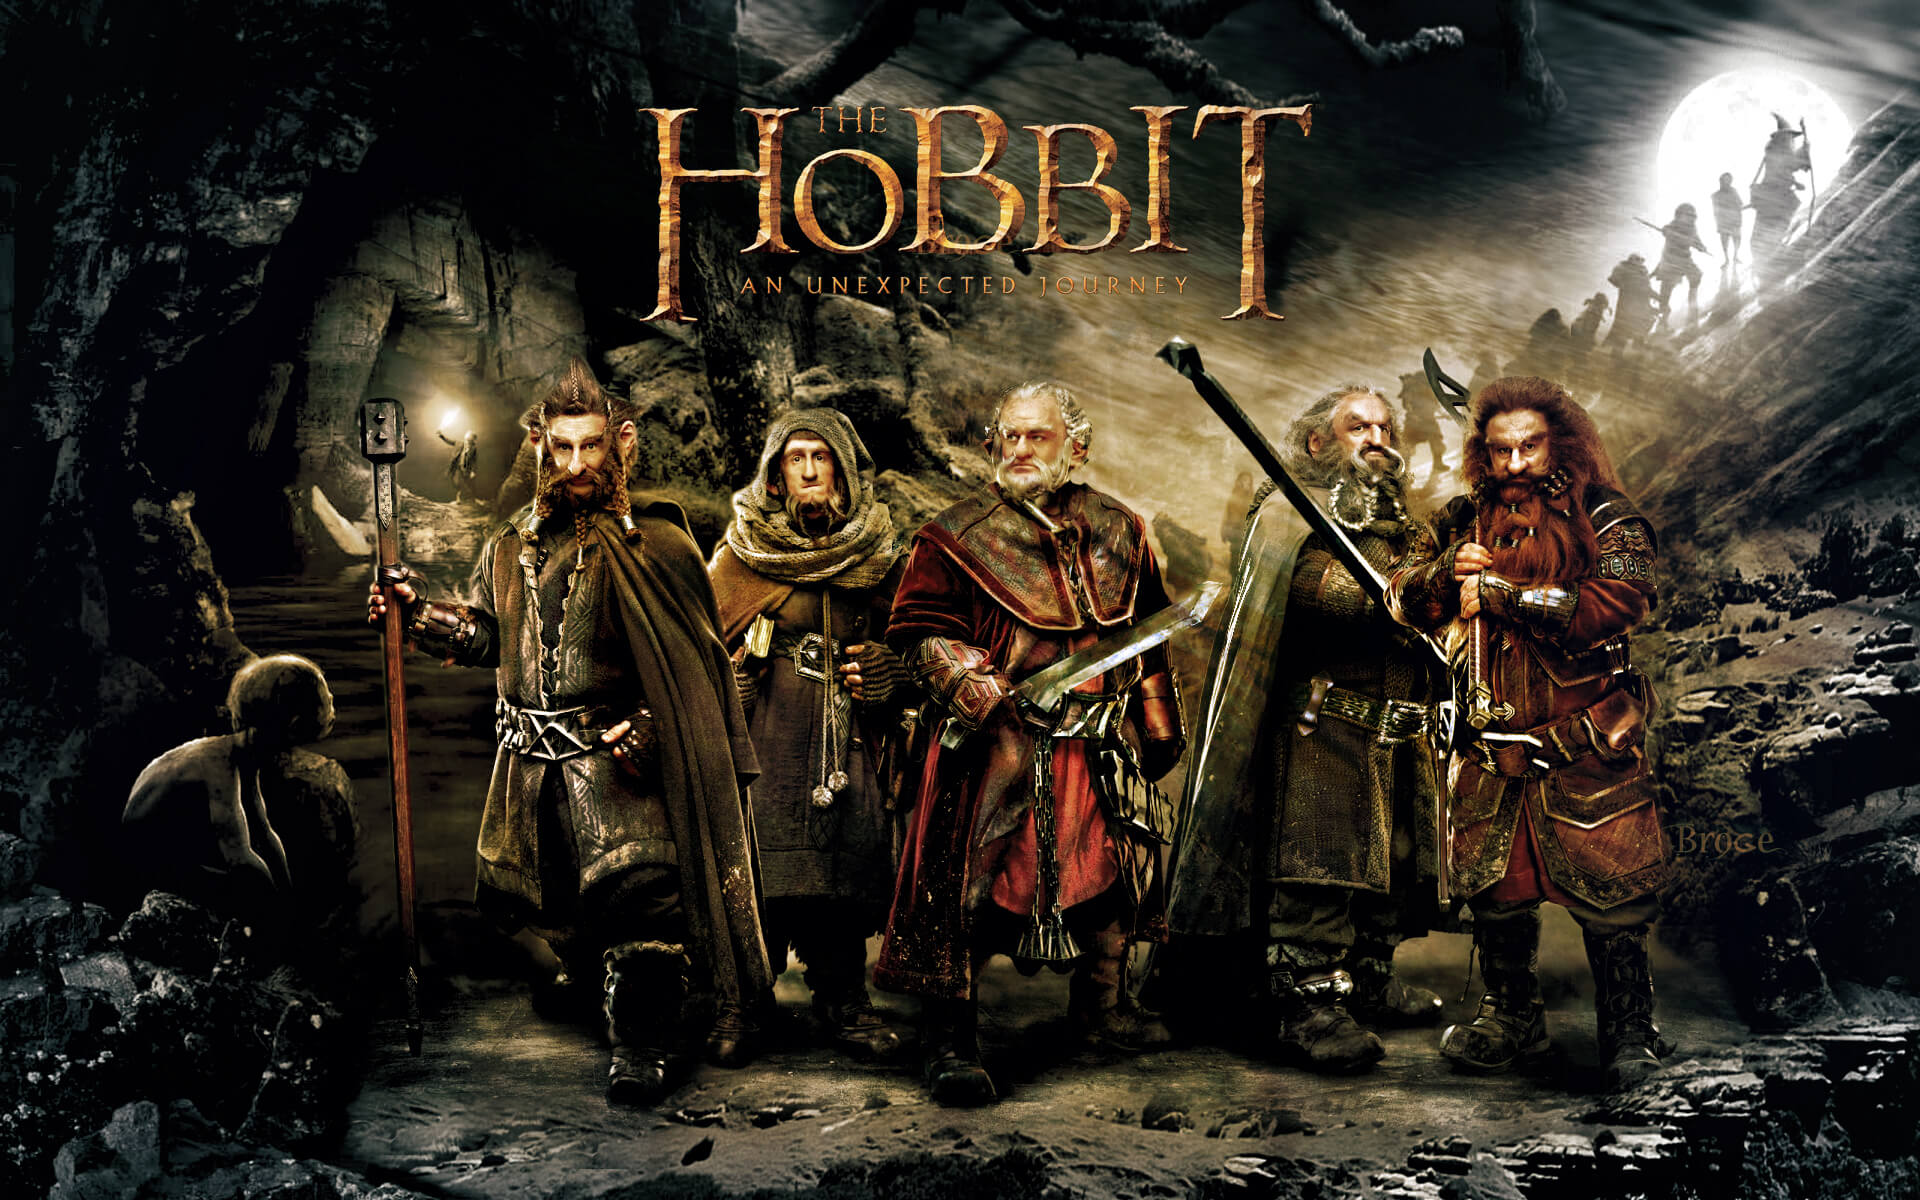 the-hobbit-the-hobbit-wallpaper